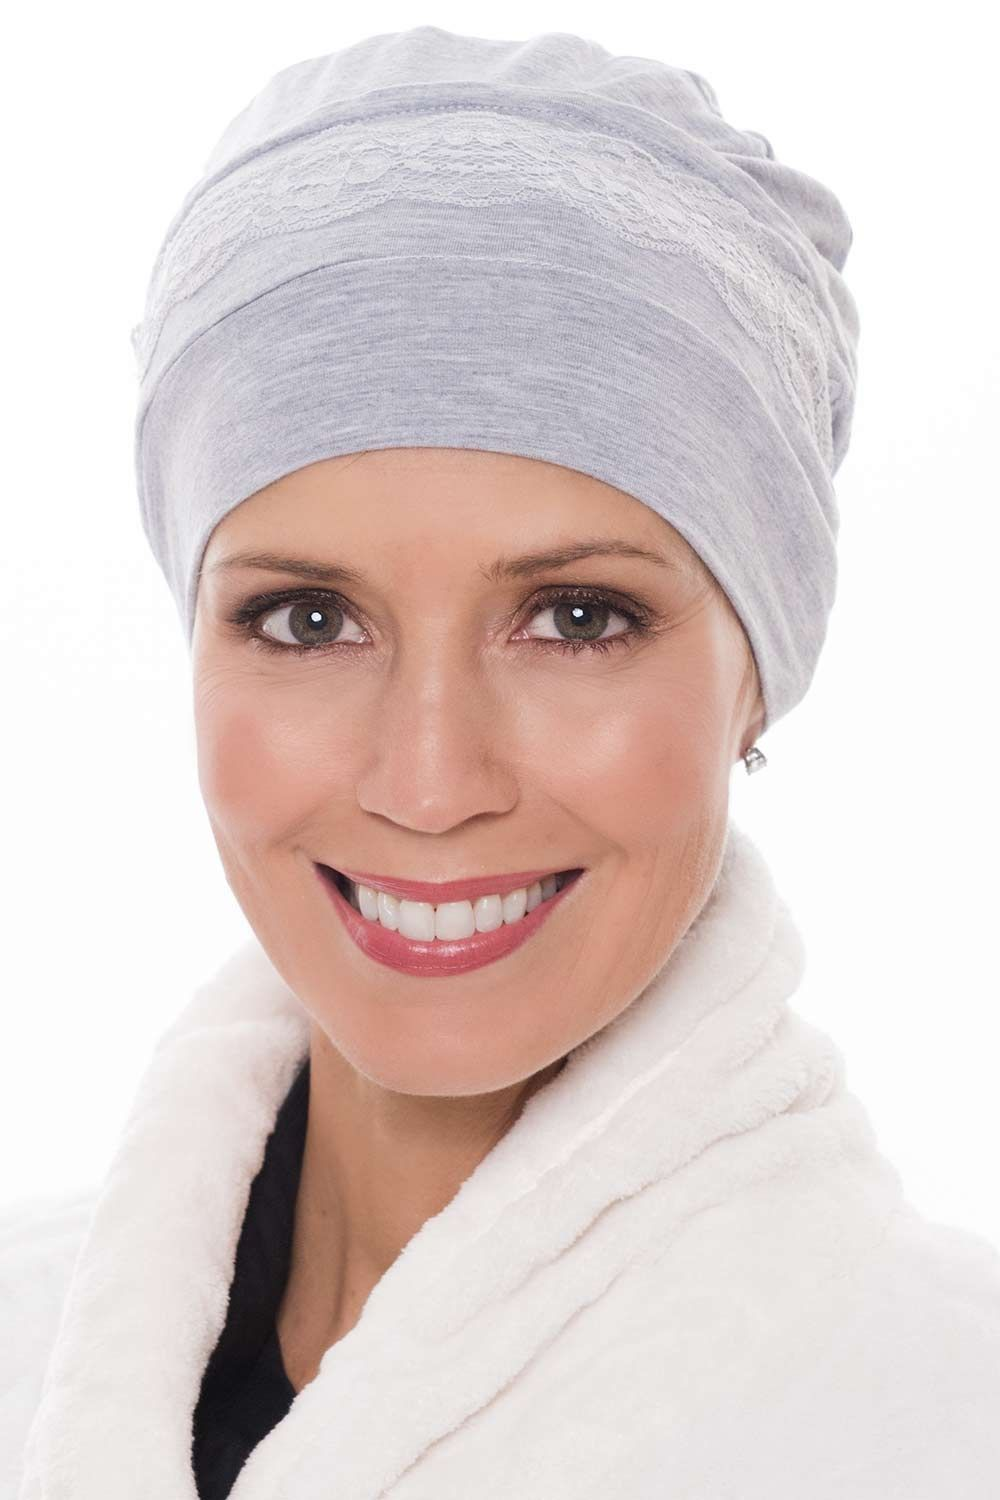 Help synthetic wigs last longer - use a sleep cap at night.